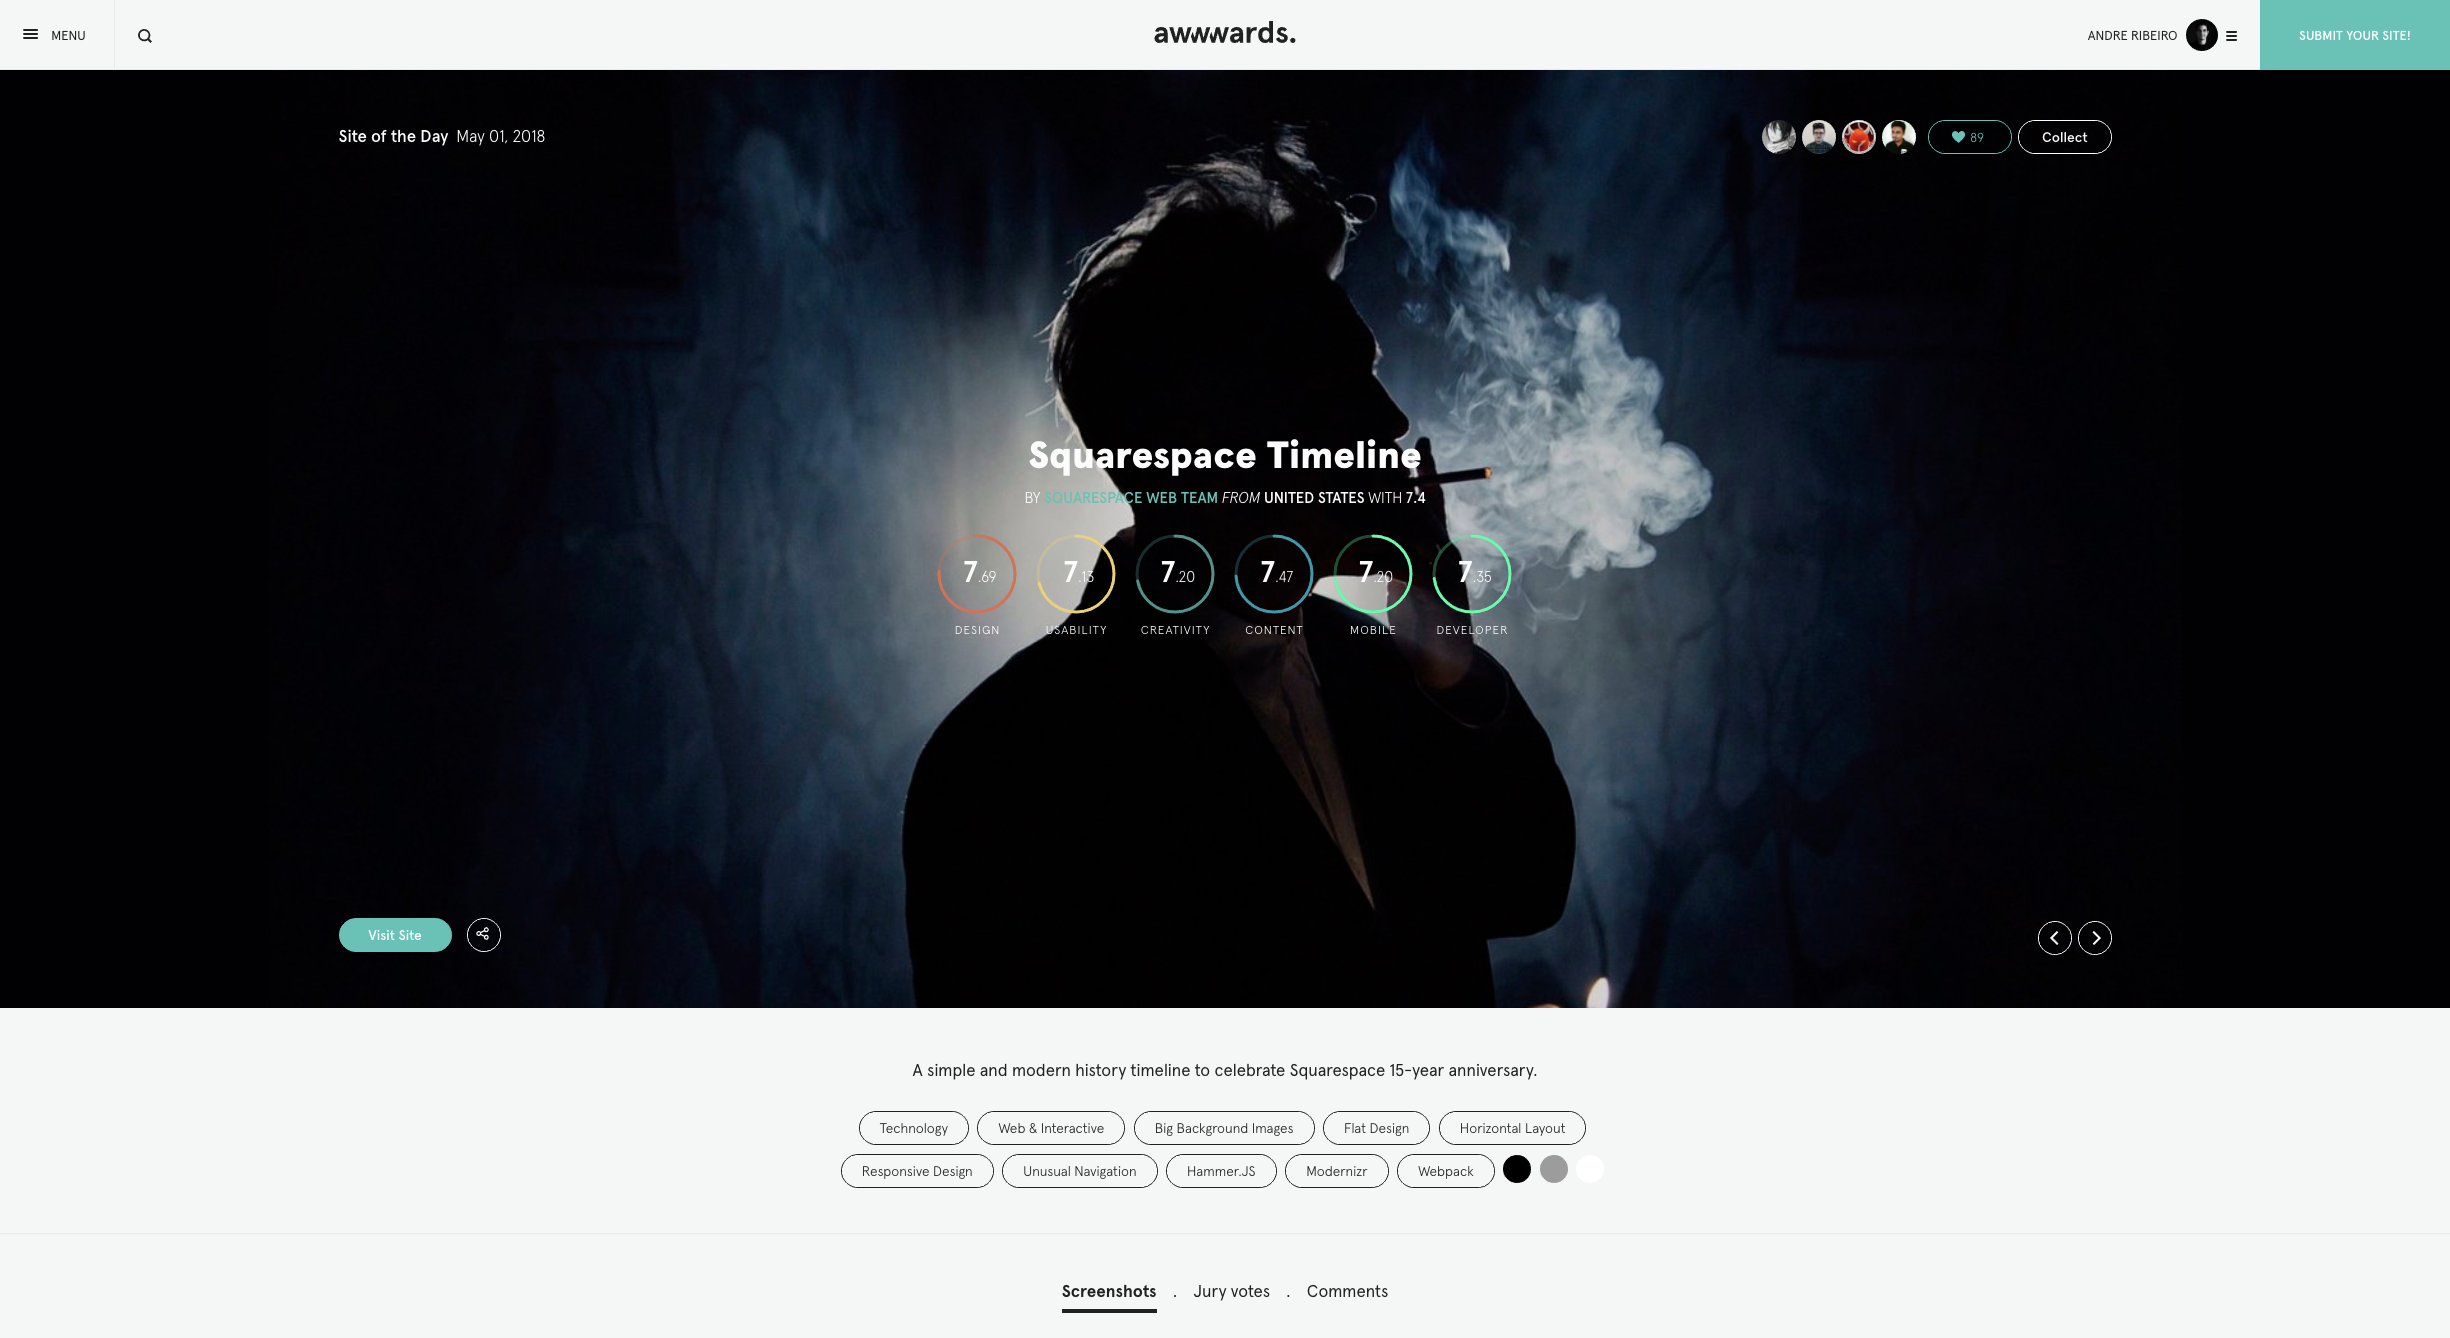 screenshot-www.awwwards.com-2019.03.24-20-37-16.png